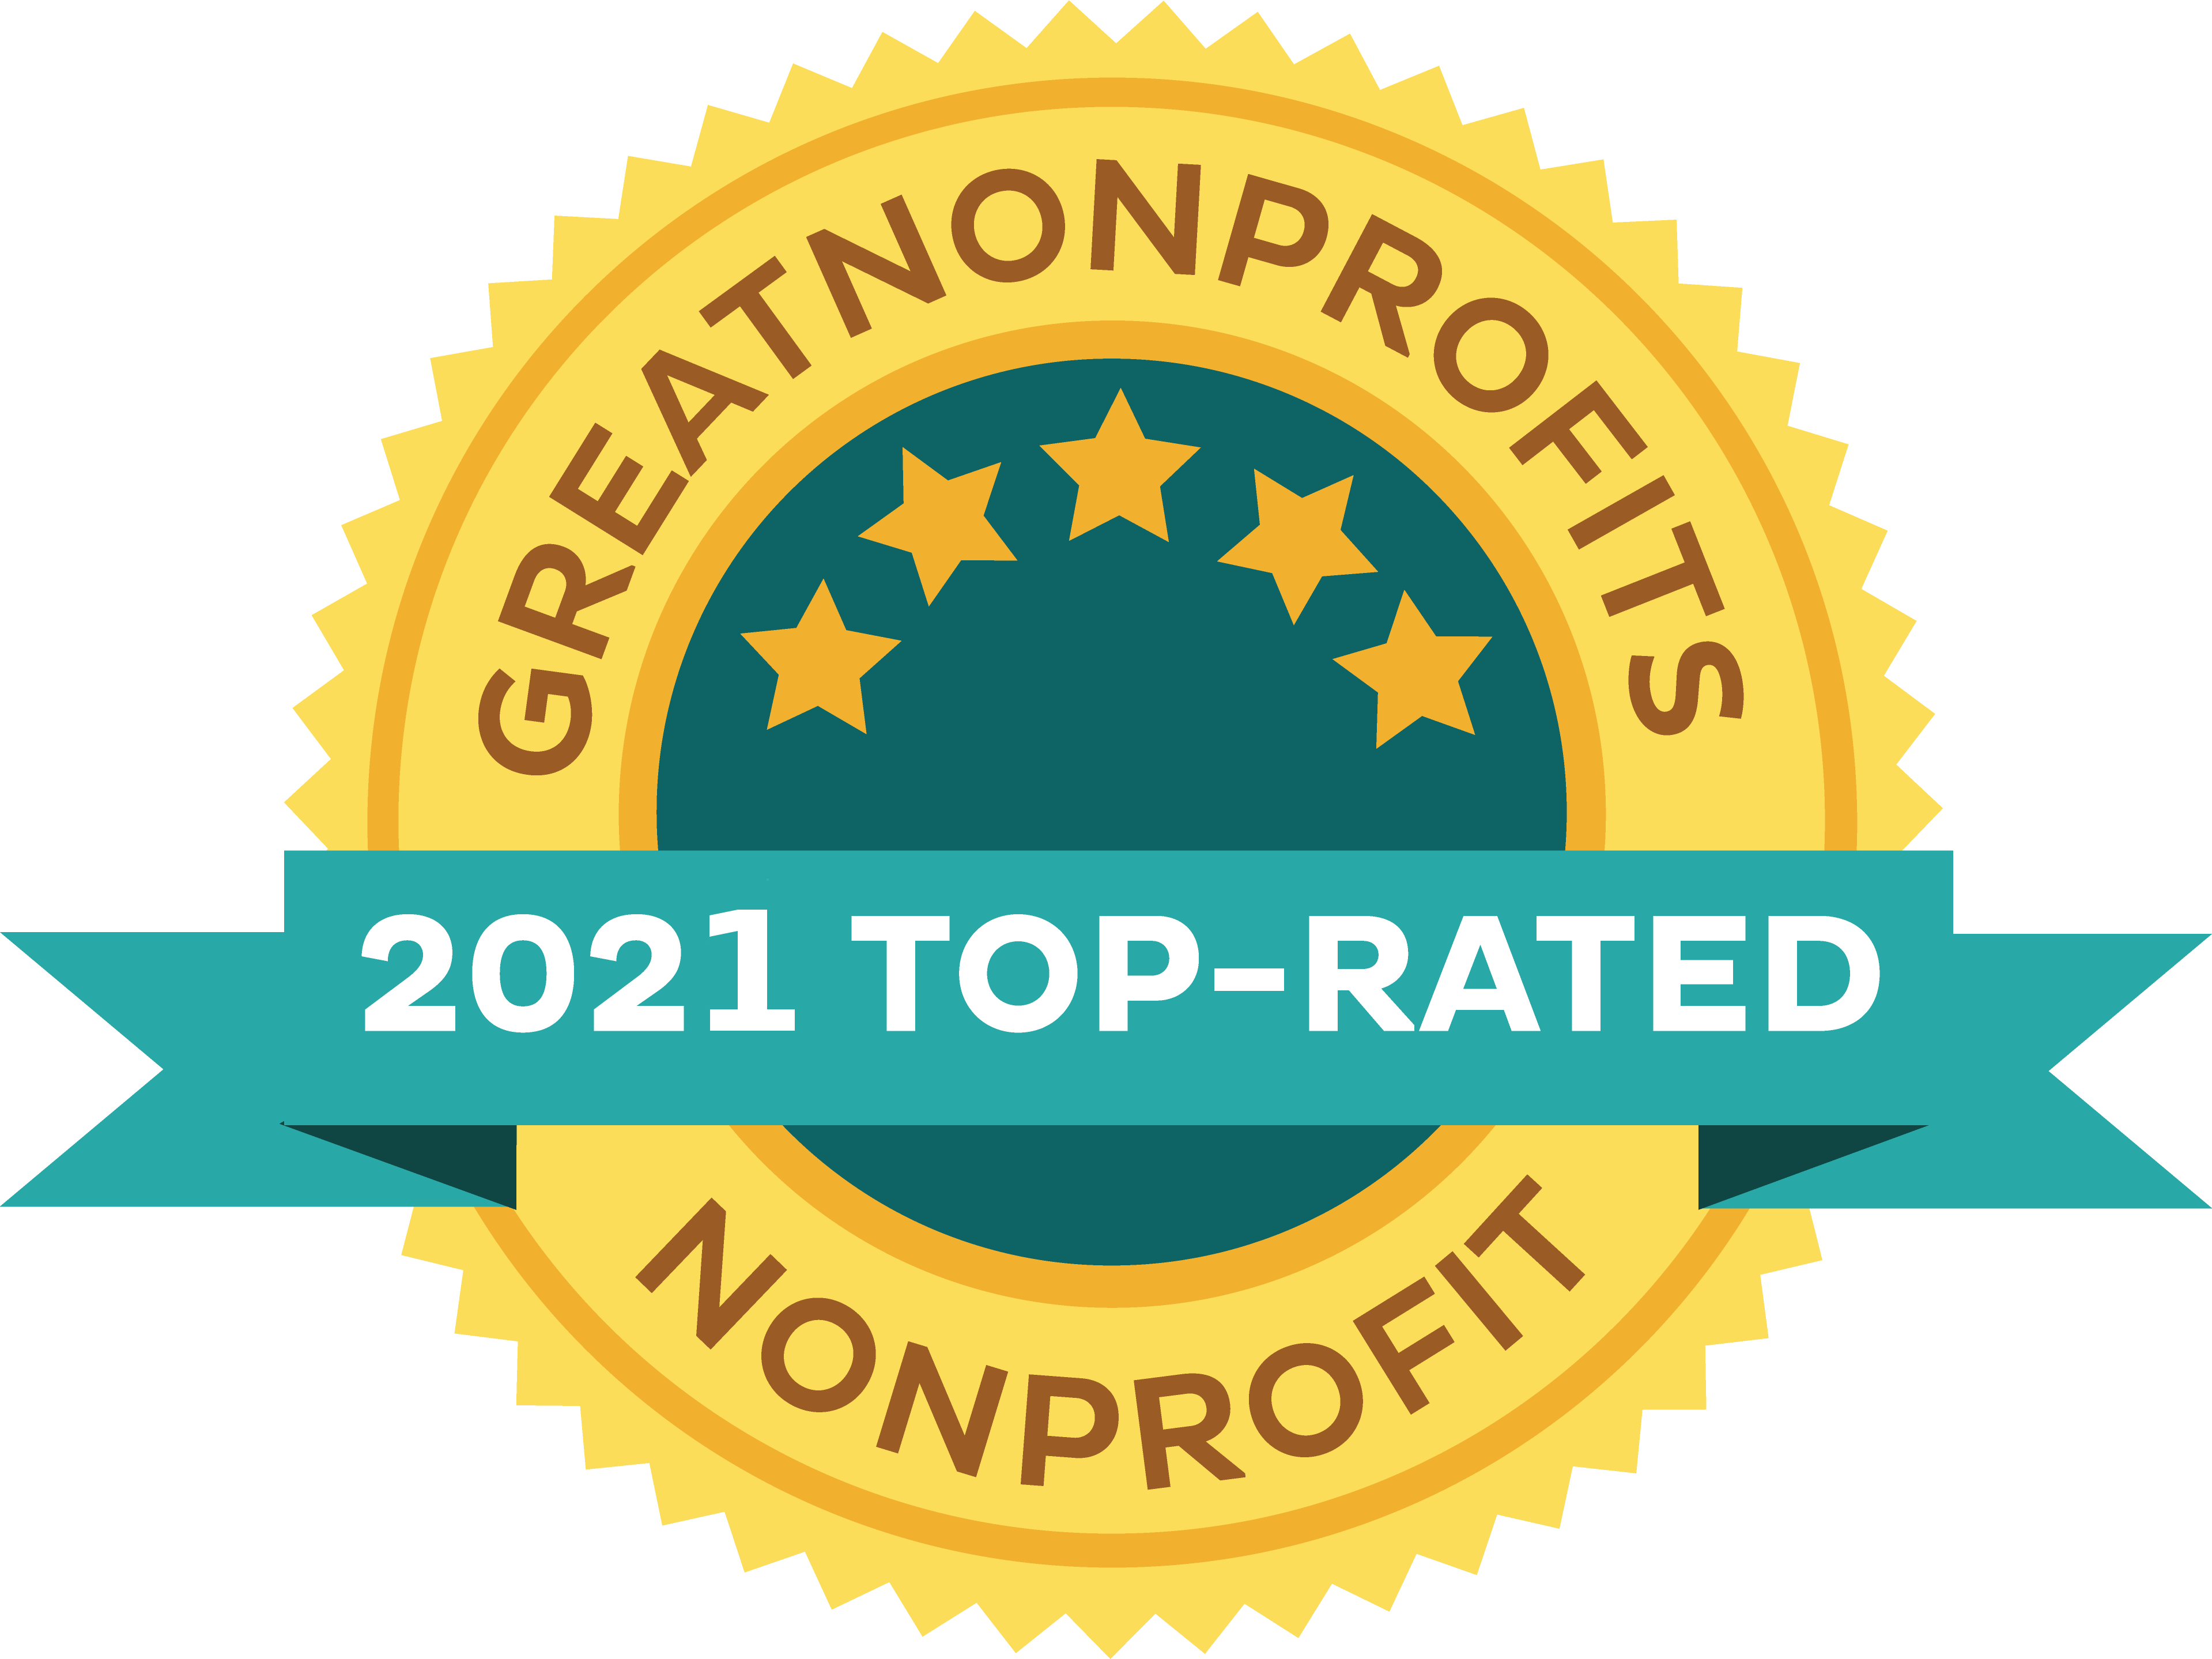 2021 Top Rated Awards Badge from Great Nonprofits